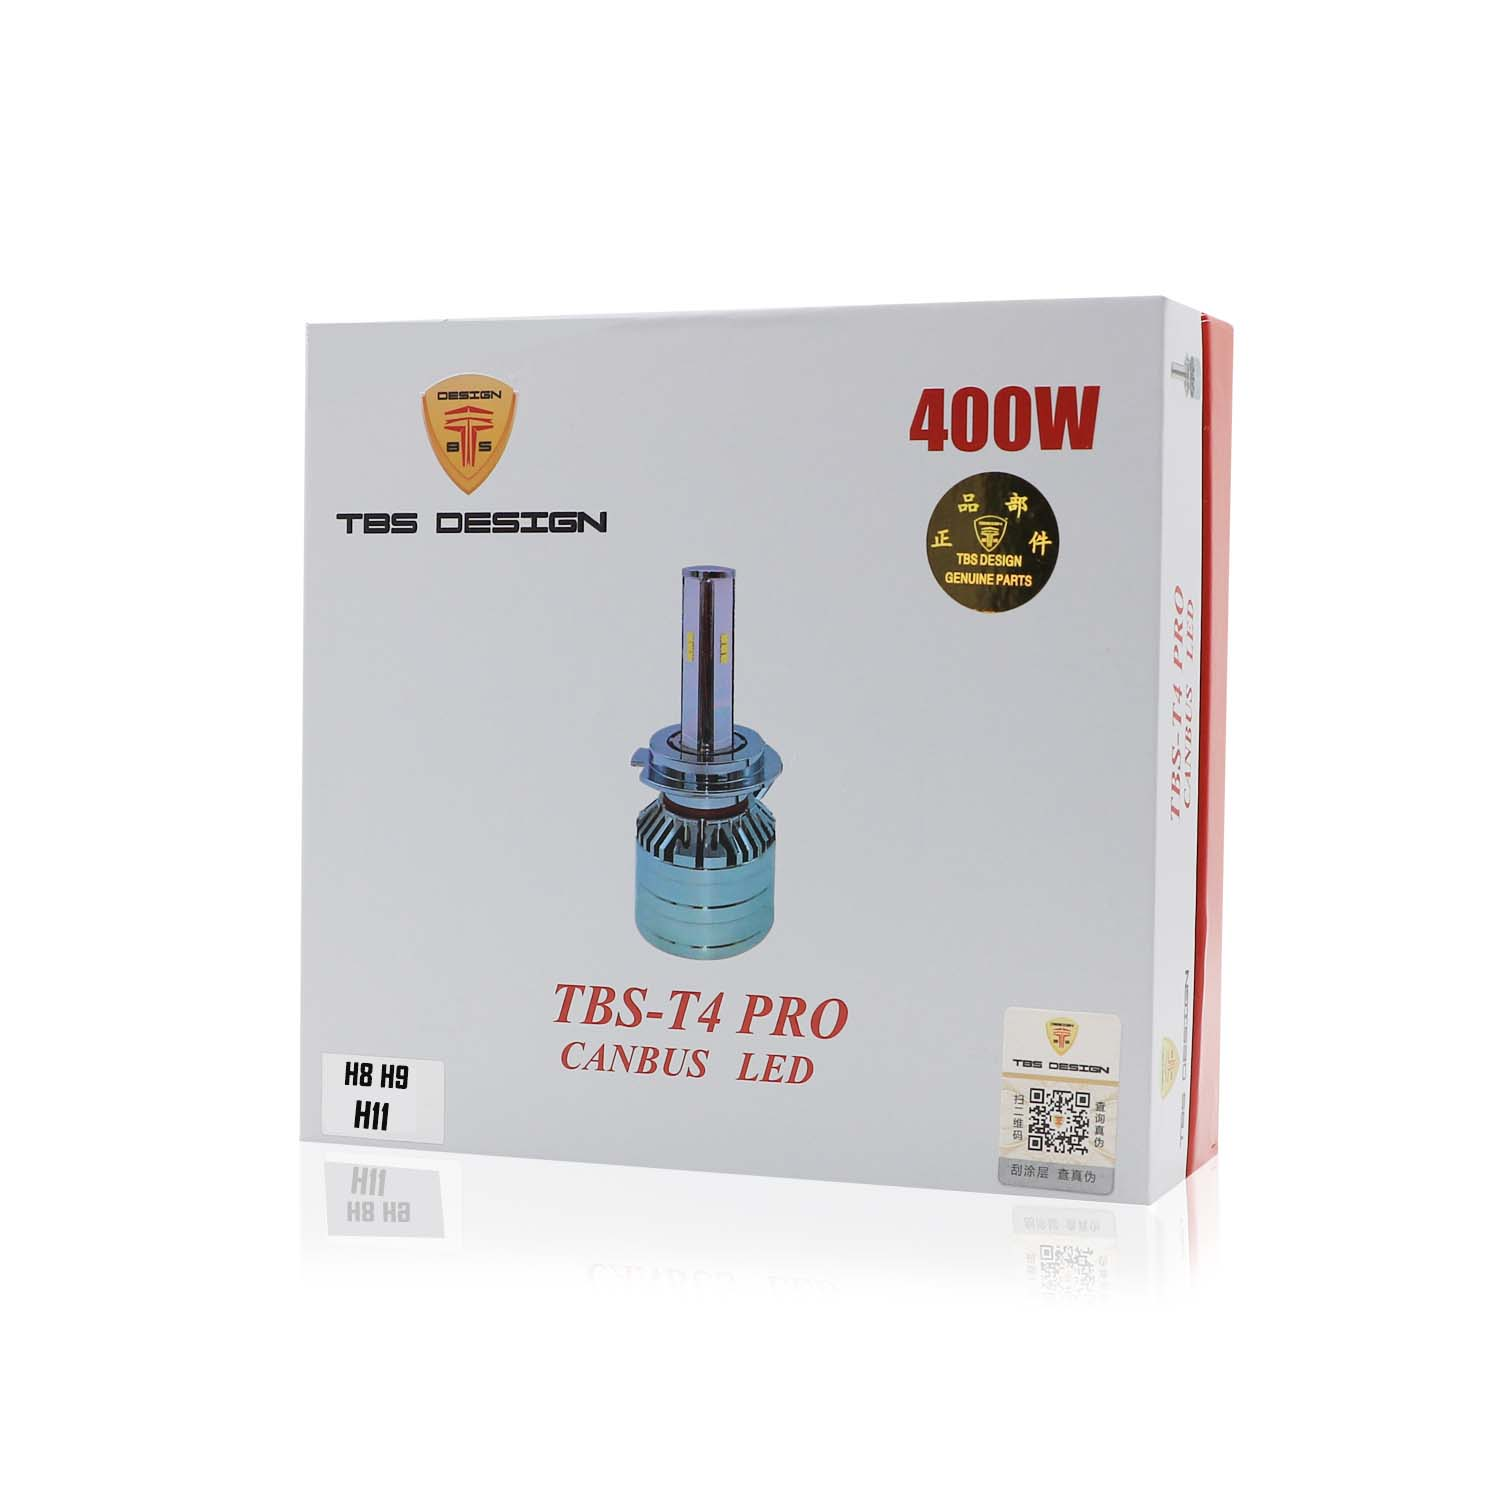 T4 PRO H11 Canbus LED Headlight 400W 40000LM